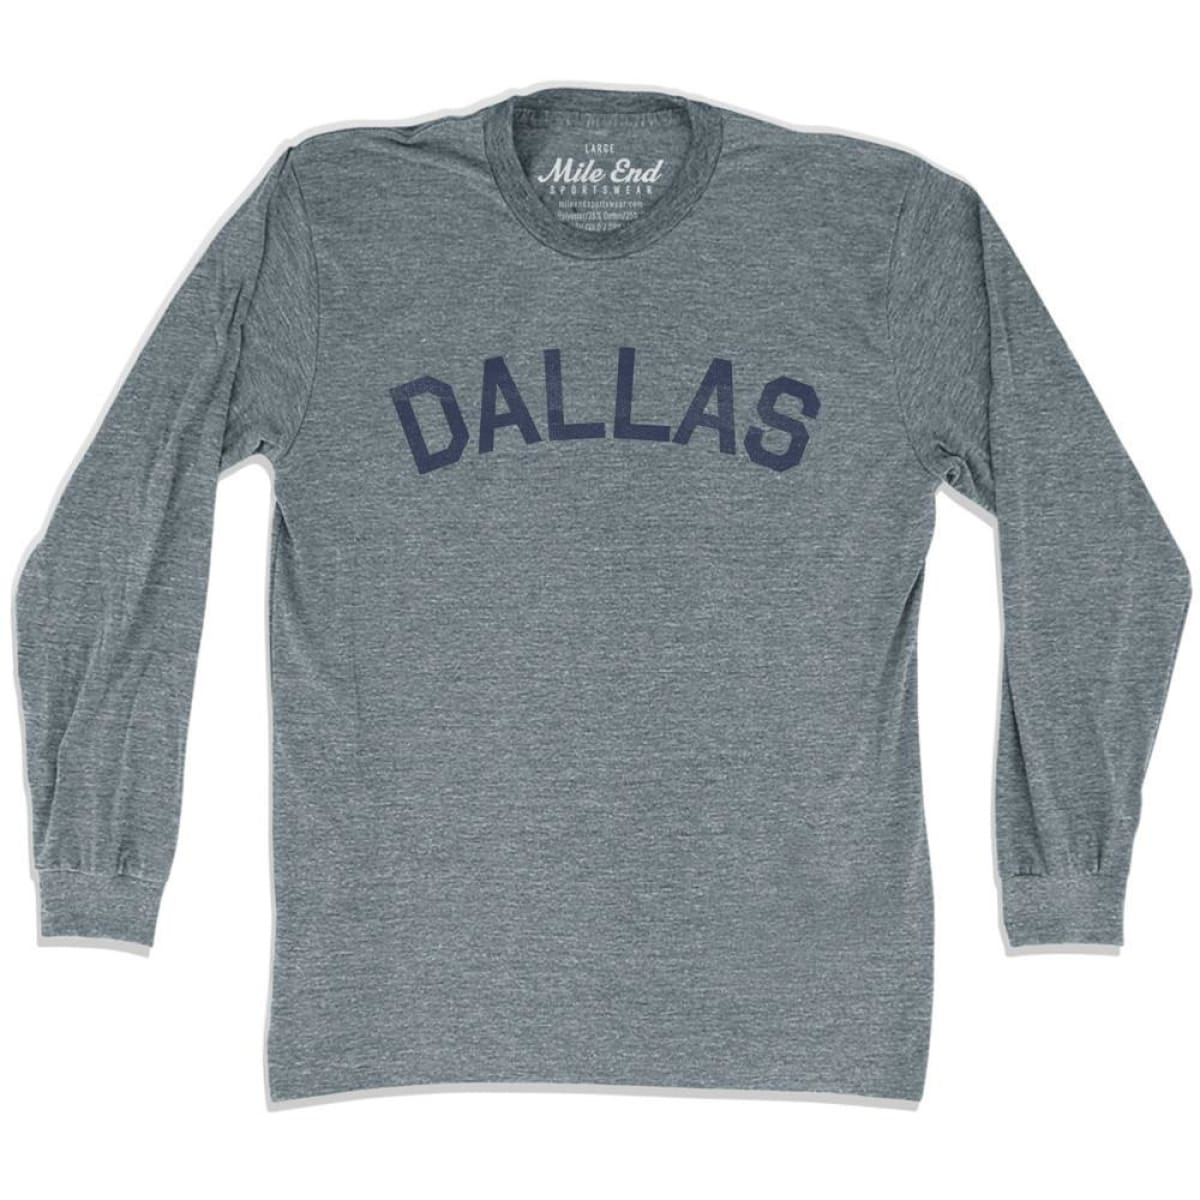 Dallas City Vintage Long Sleeve T-Shirt - Athletic Grey / Adult X-Small - Mile End City